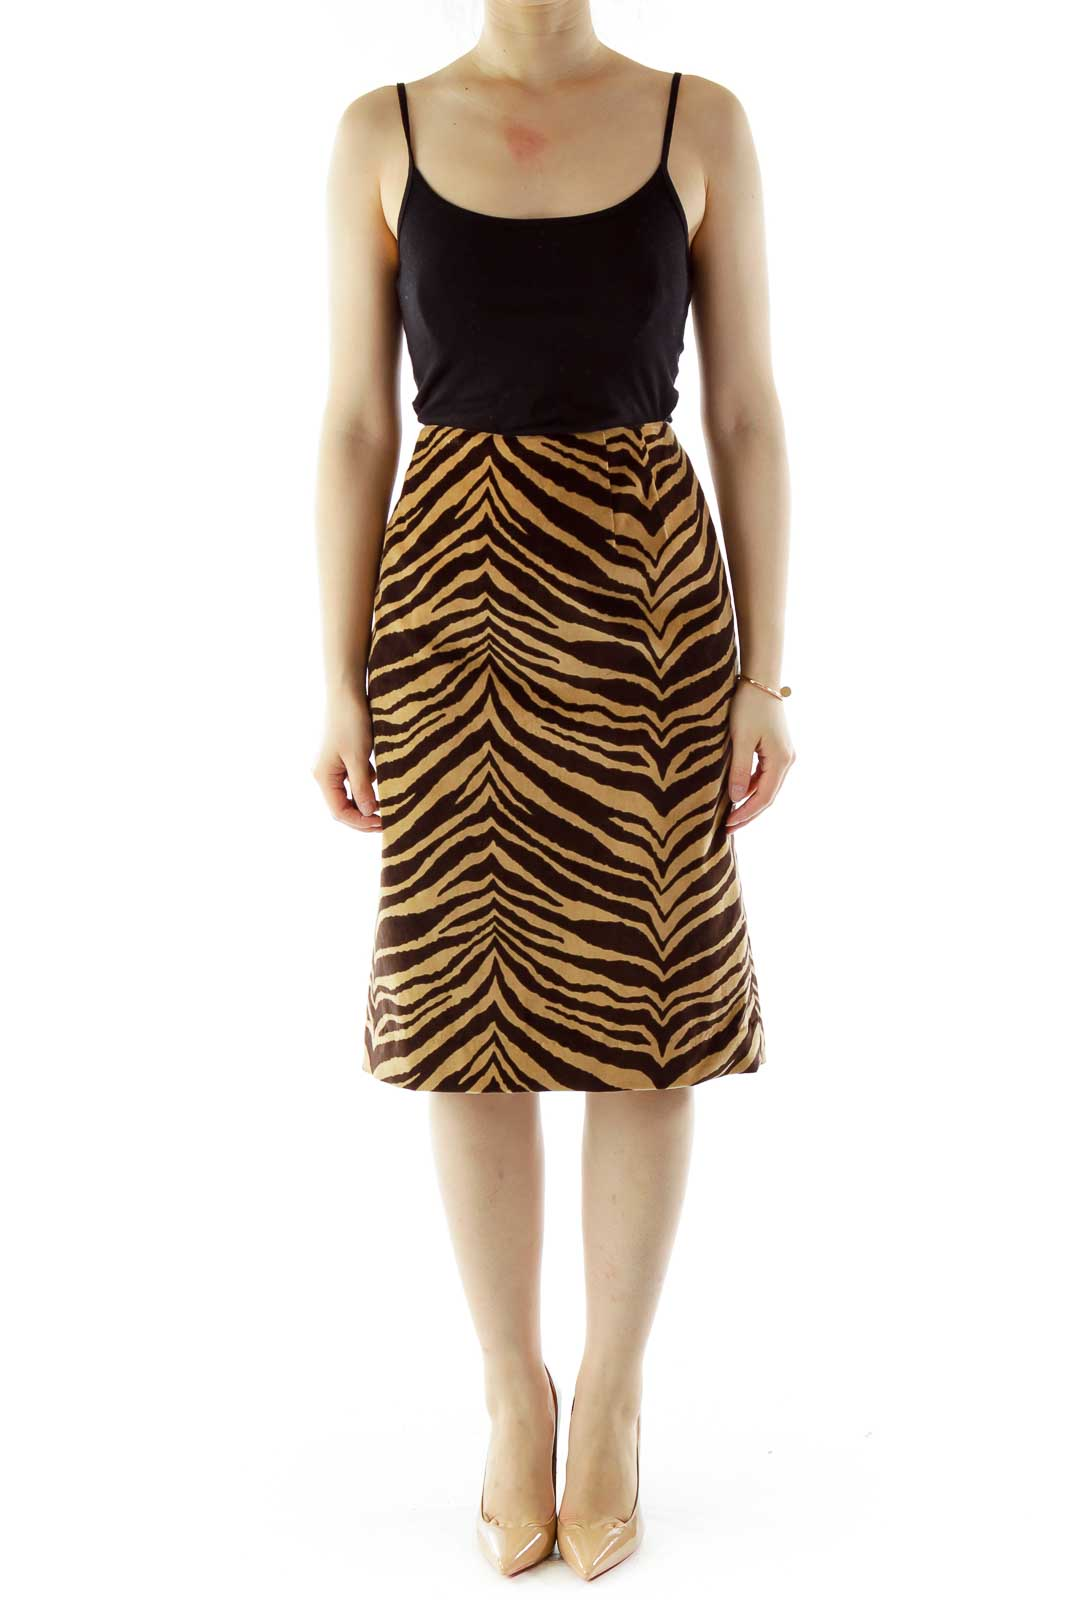 Brown Zebra Print Pencil Skirt